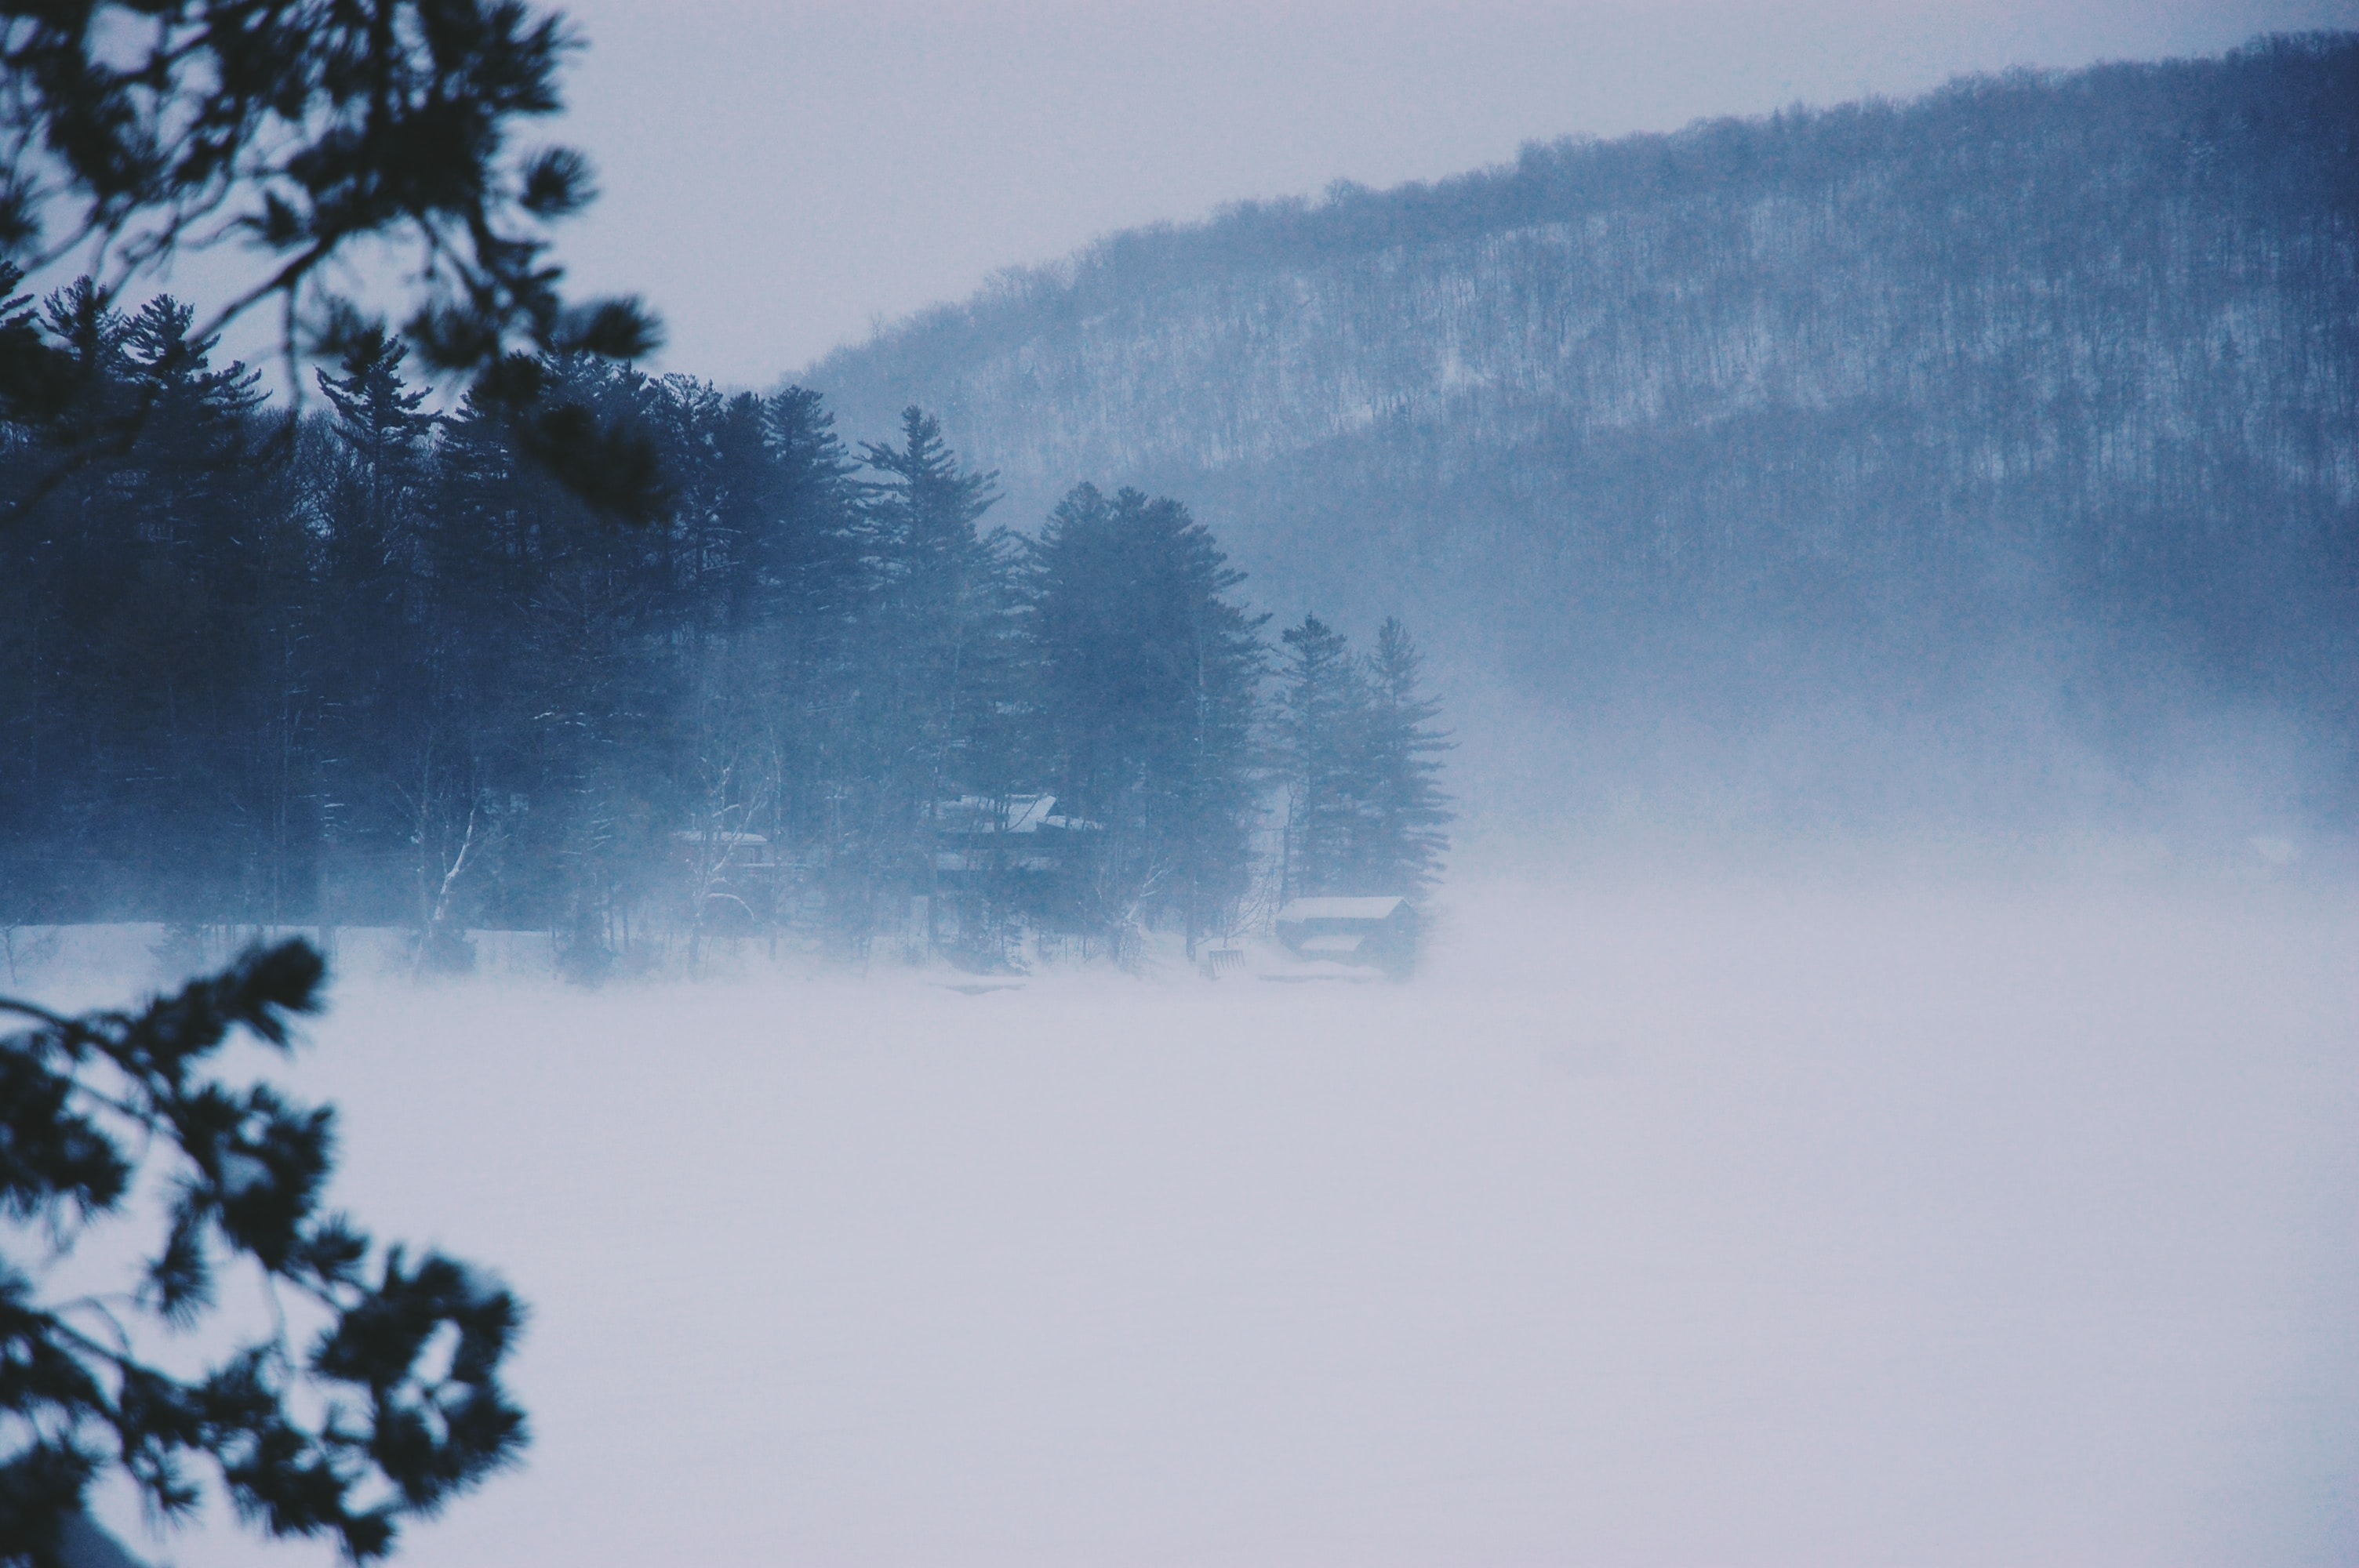 fogs surrounding forest during daytime